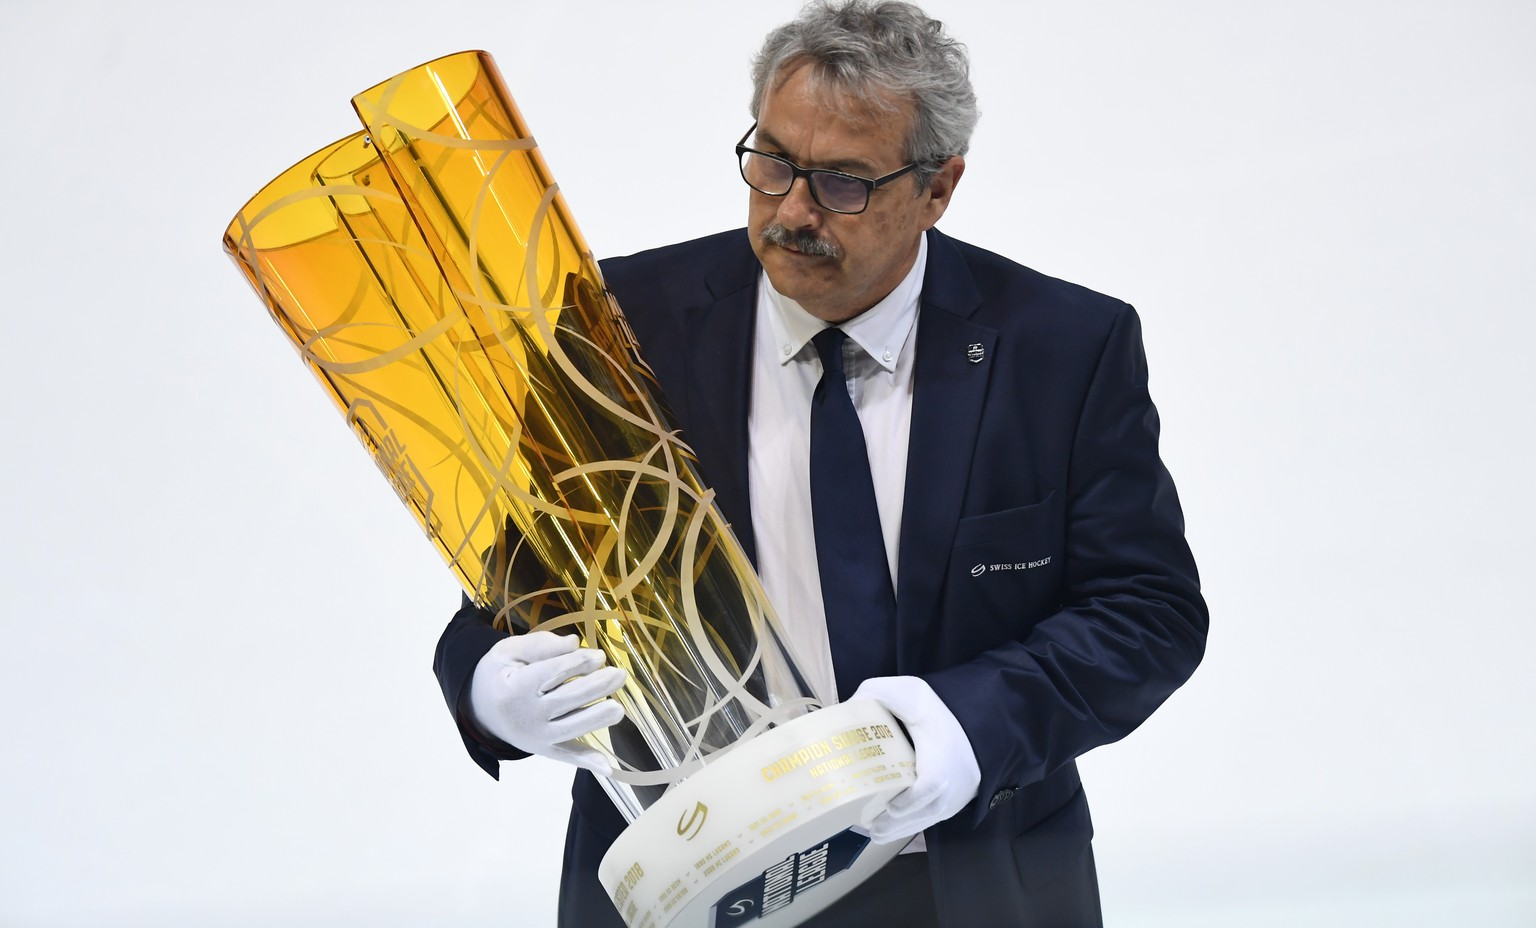 The Swiss Ice Hockey Championship trophy is seen before the fifth match of the playoff final of the National League of the ice hockey Swiss Championship between the HC Lugano and the ZSC Lions, at the ice stadium Resega in Lugano, Switzerland, Saturday, April 21, 2018. (KEYSTONE/Ti-Press/Gabriele Putzu)